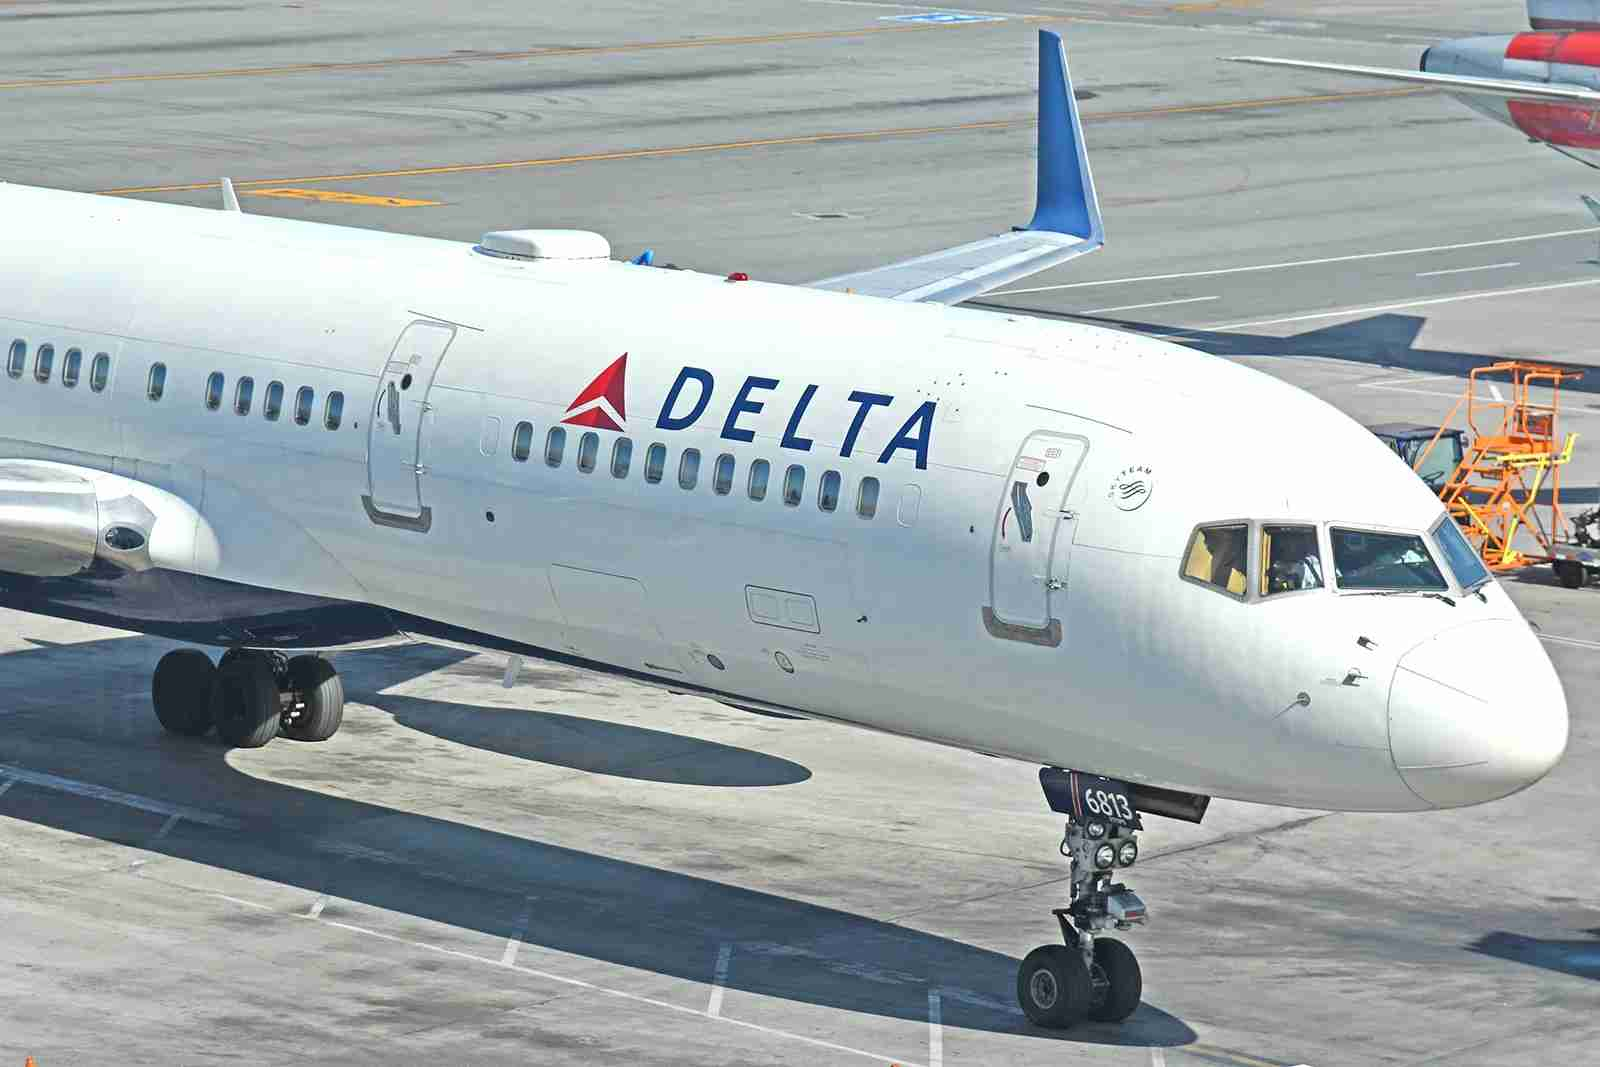 A Delta Boeing 757-200 at the San Francisco Airport in October 2017. Photo by Alberto Riva / The Points Guy